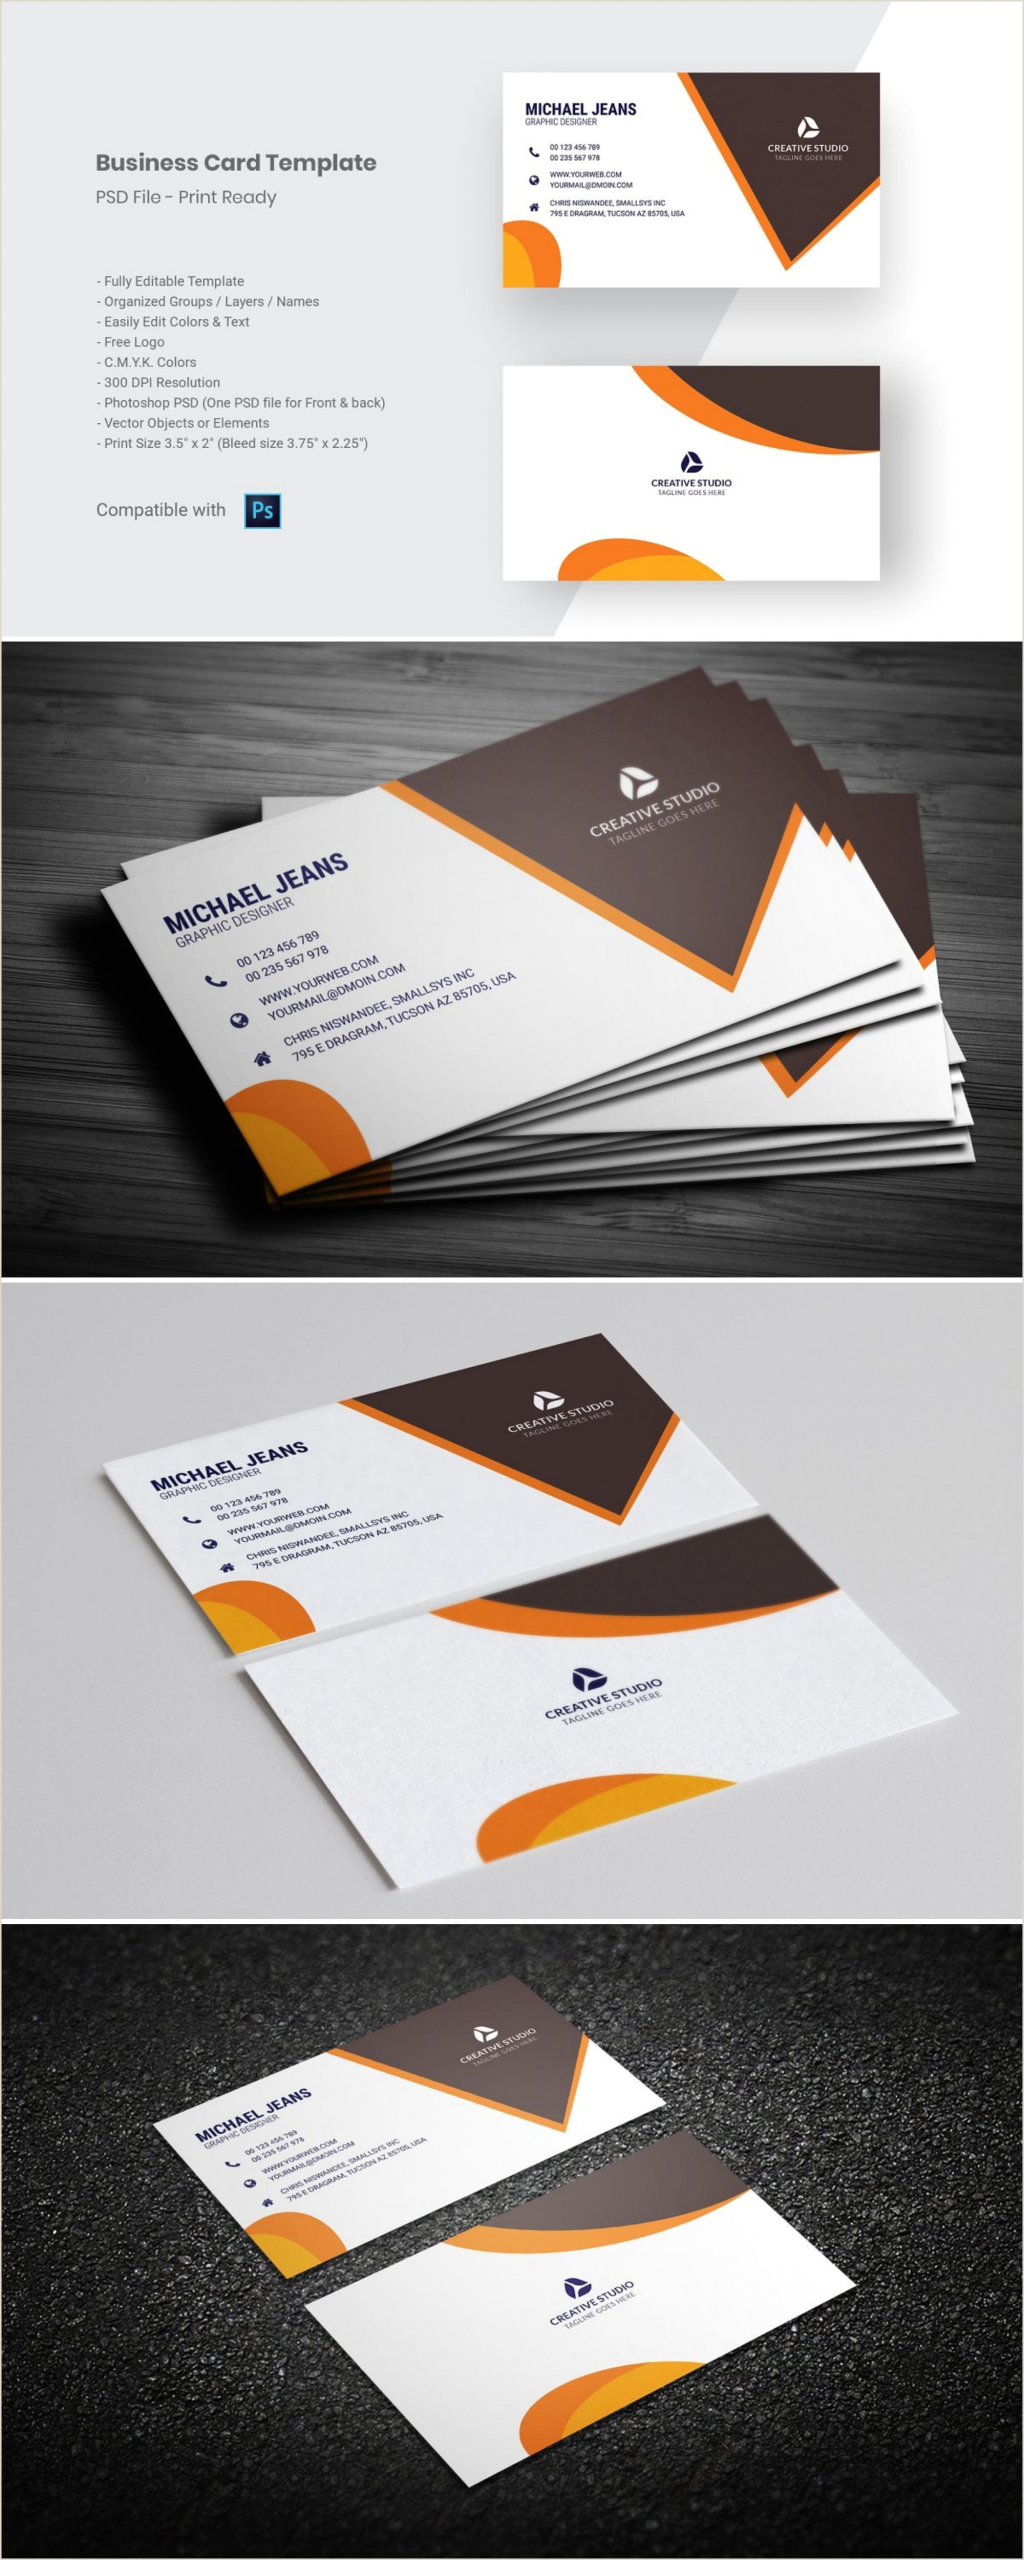 Cool Business Cards Layouts Modern Business Card Template